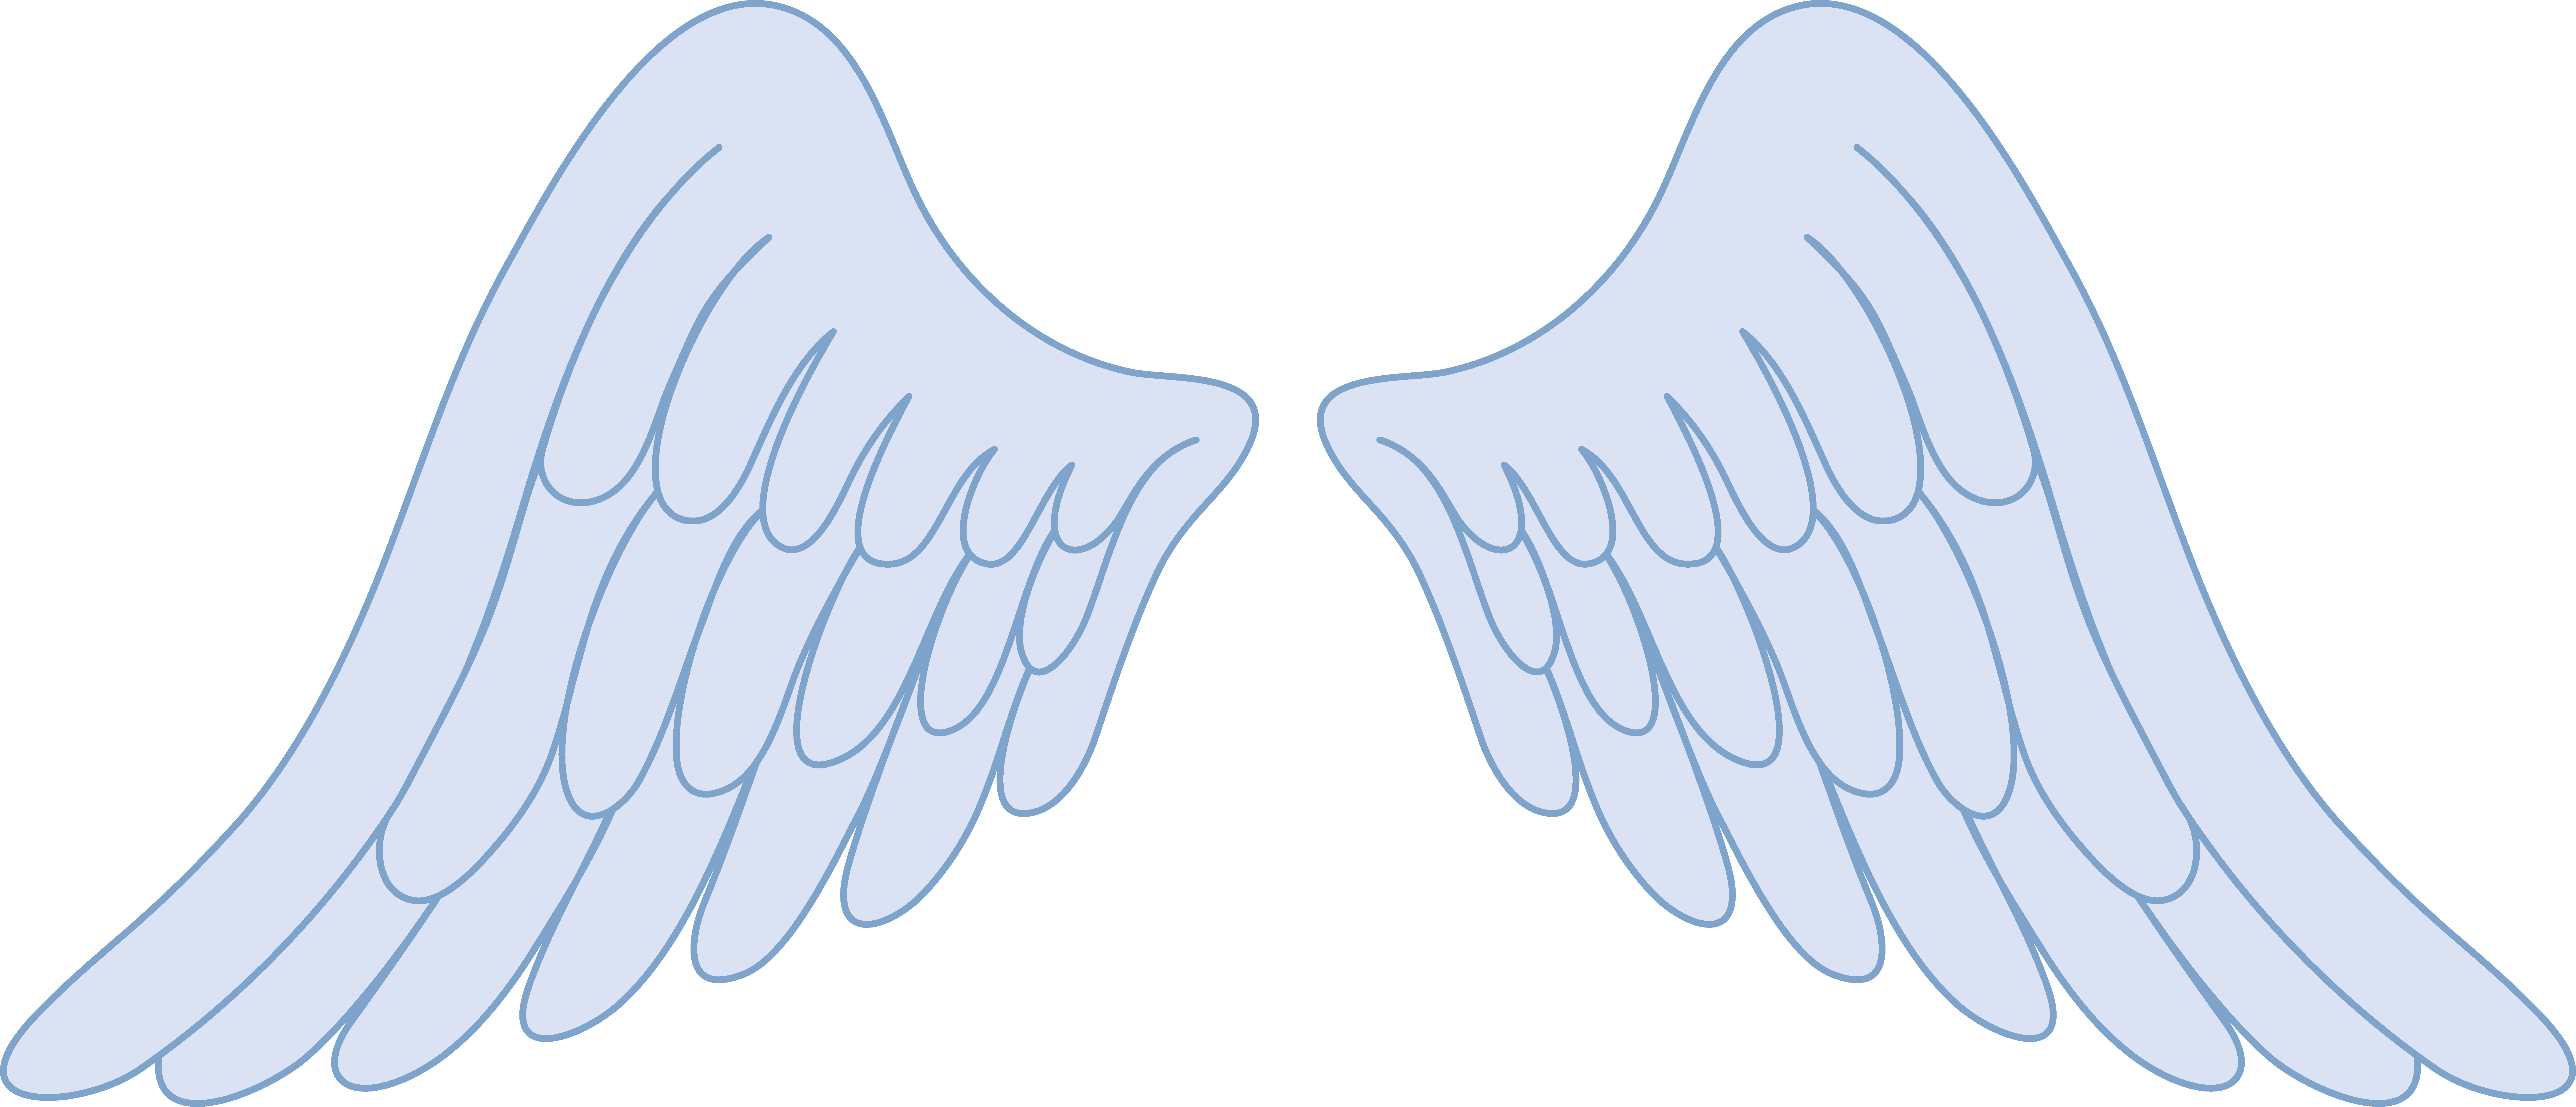 Baby angel wings png. Http sweetclipart com multisite